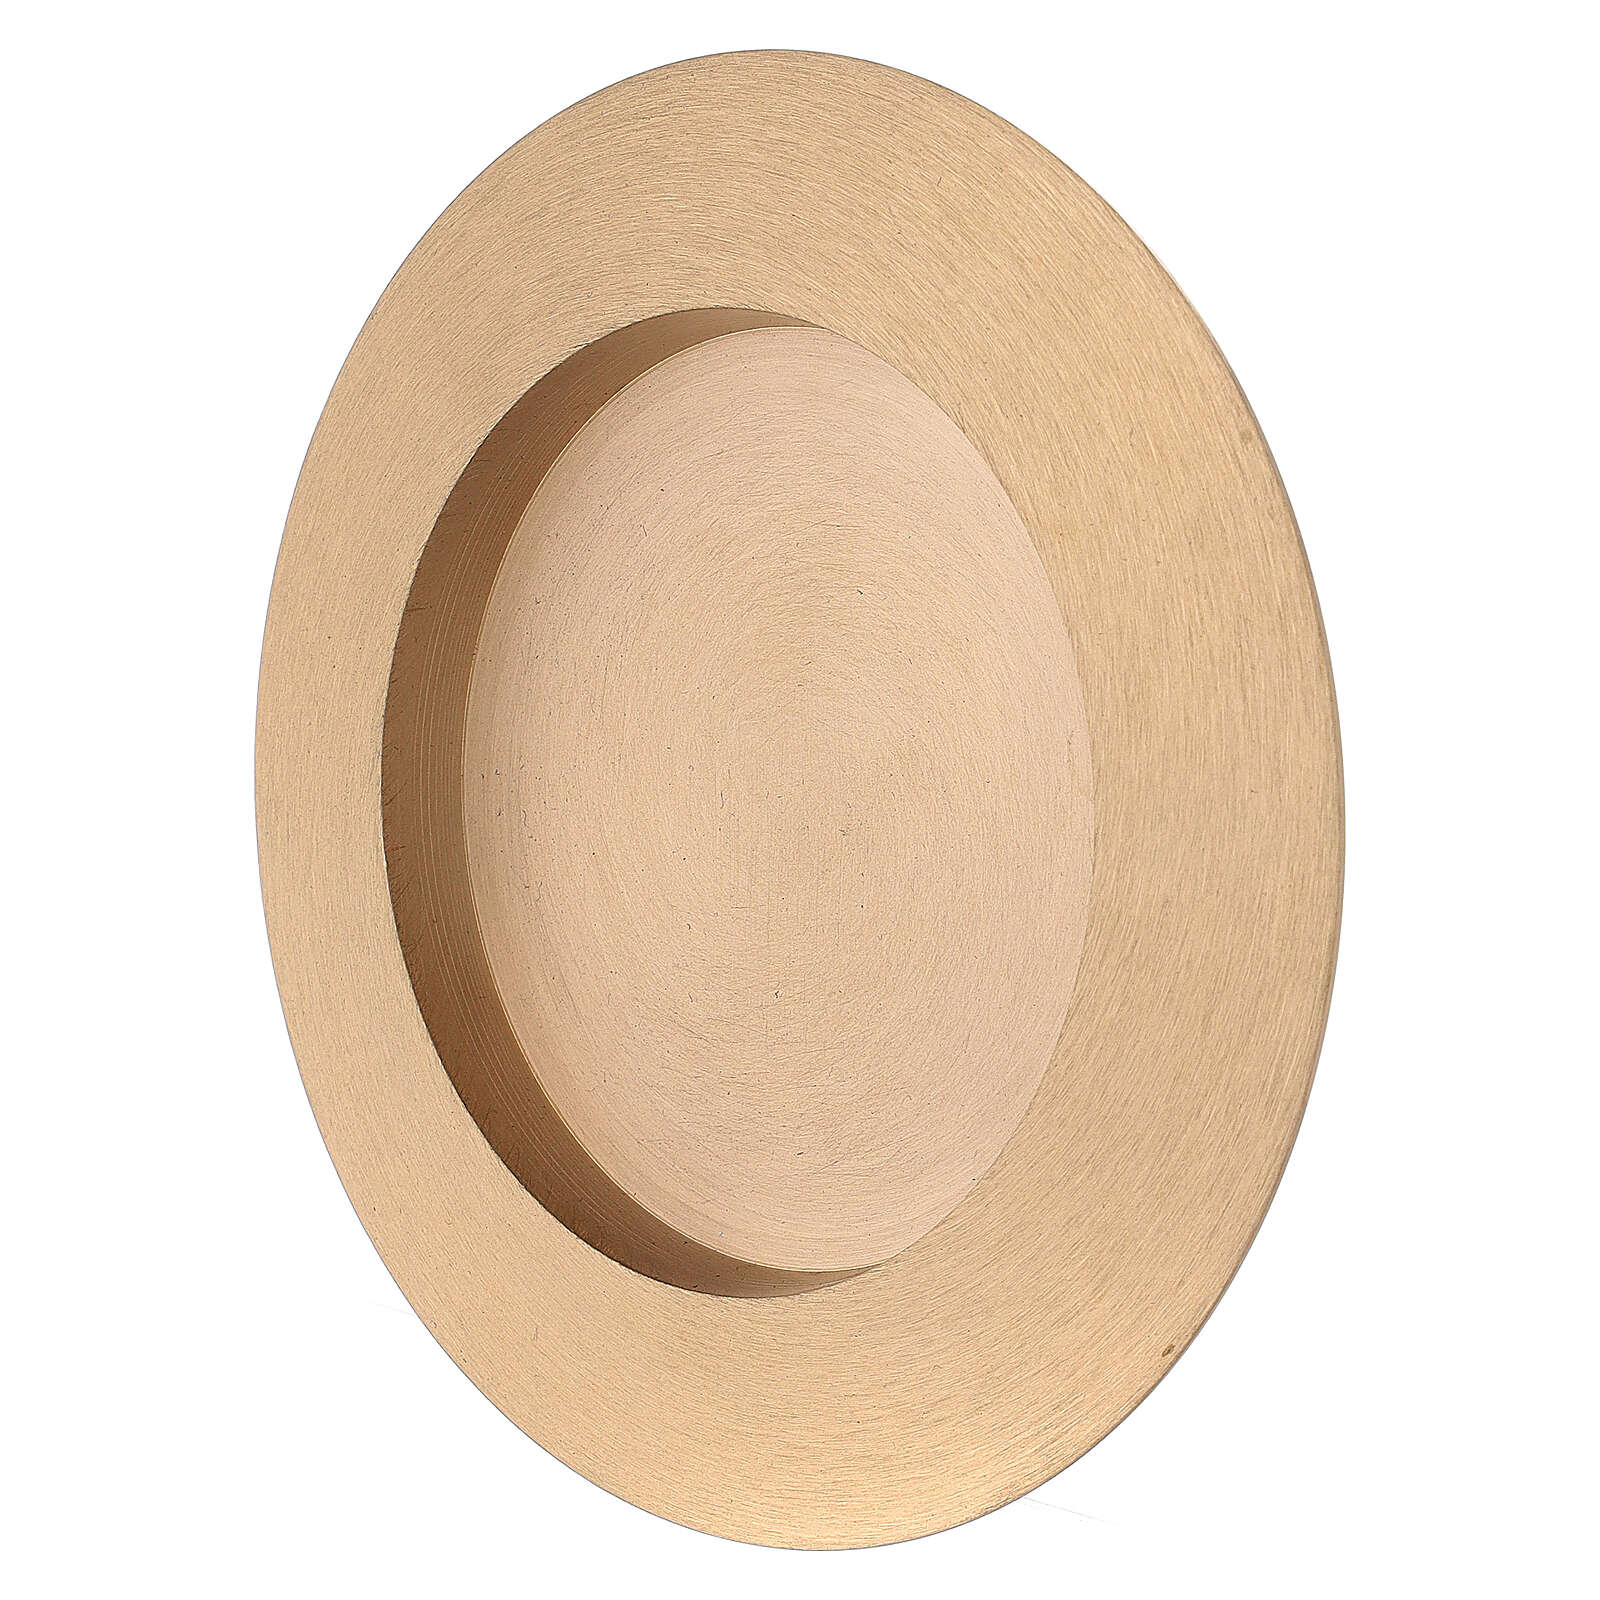 Round candle holder plate 3 in satin finish brass 4